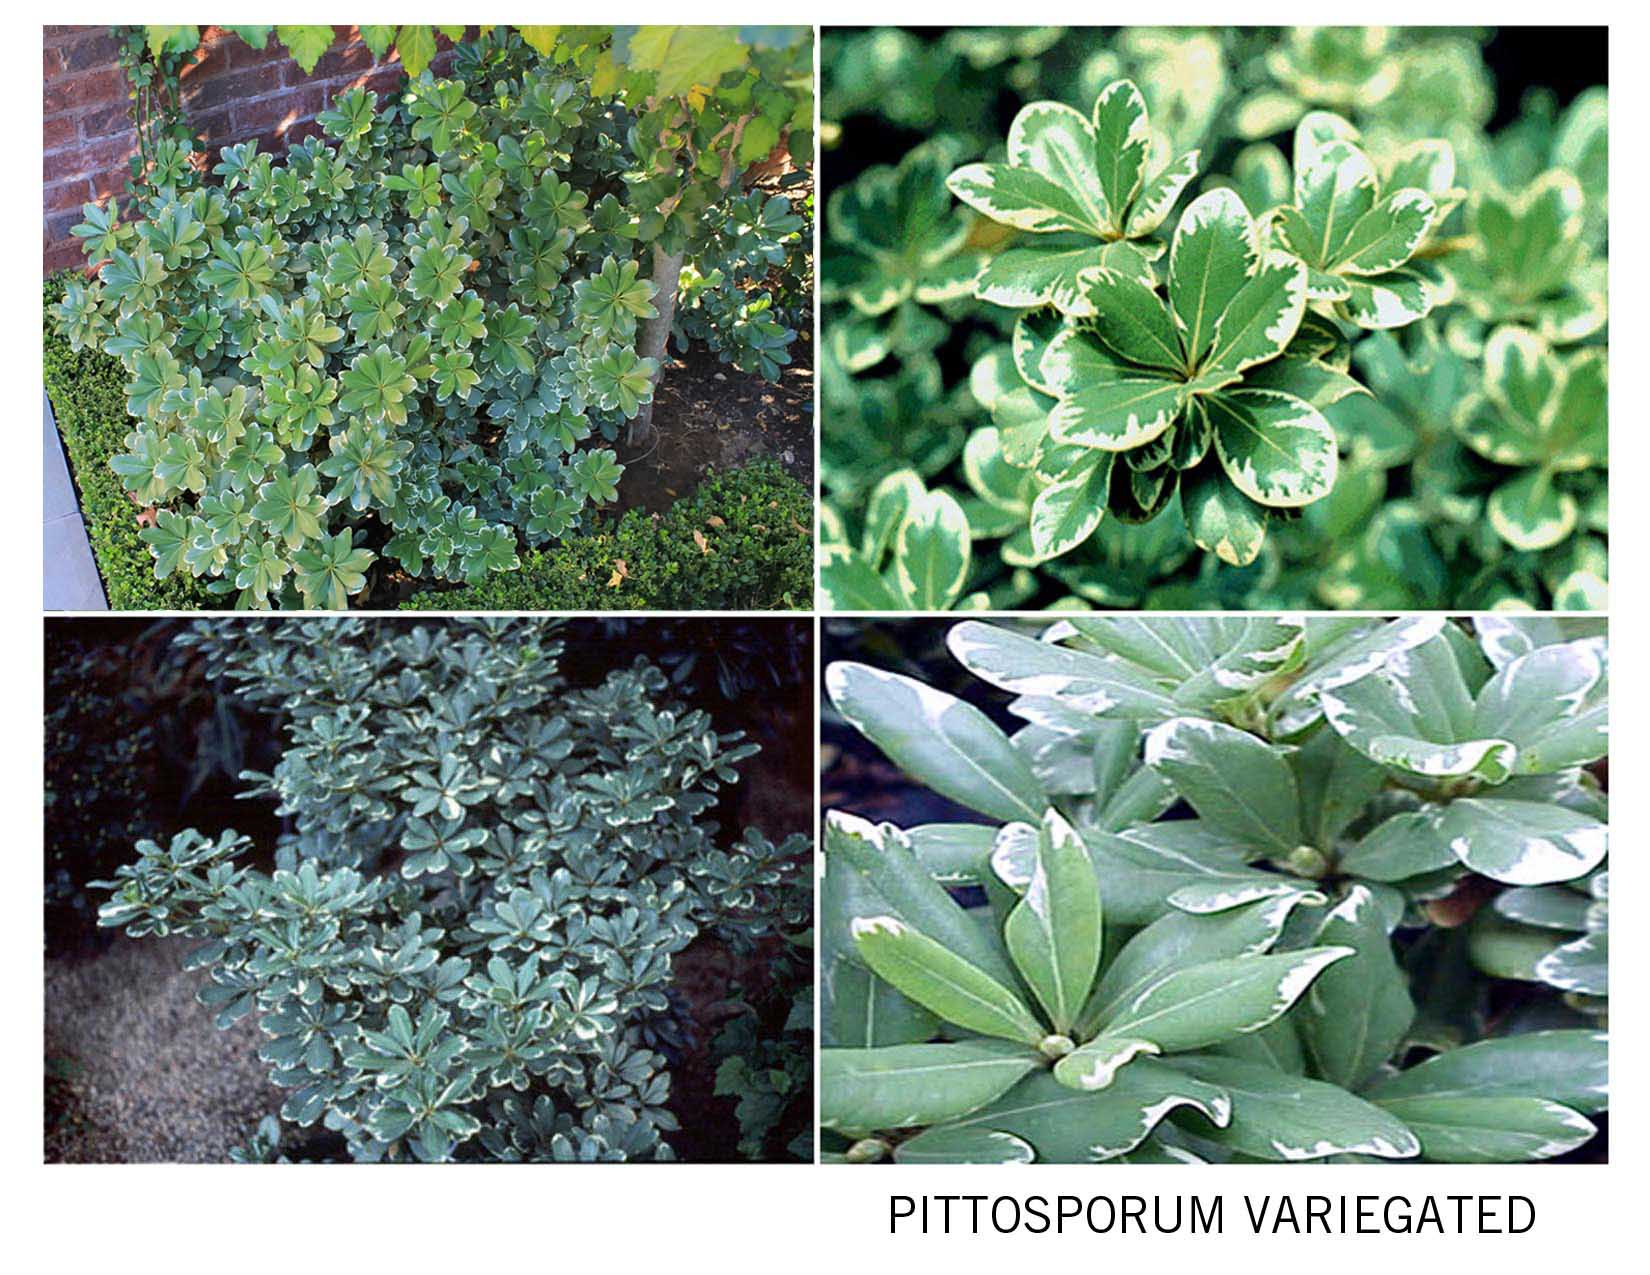 Pittosporum%2520Variegated.jpg